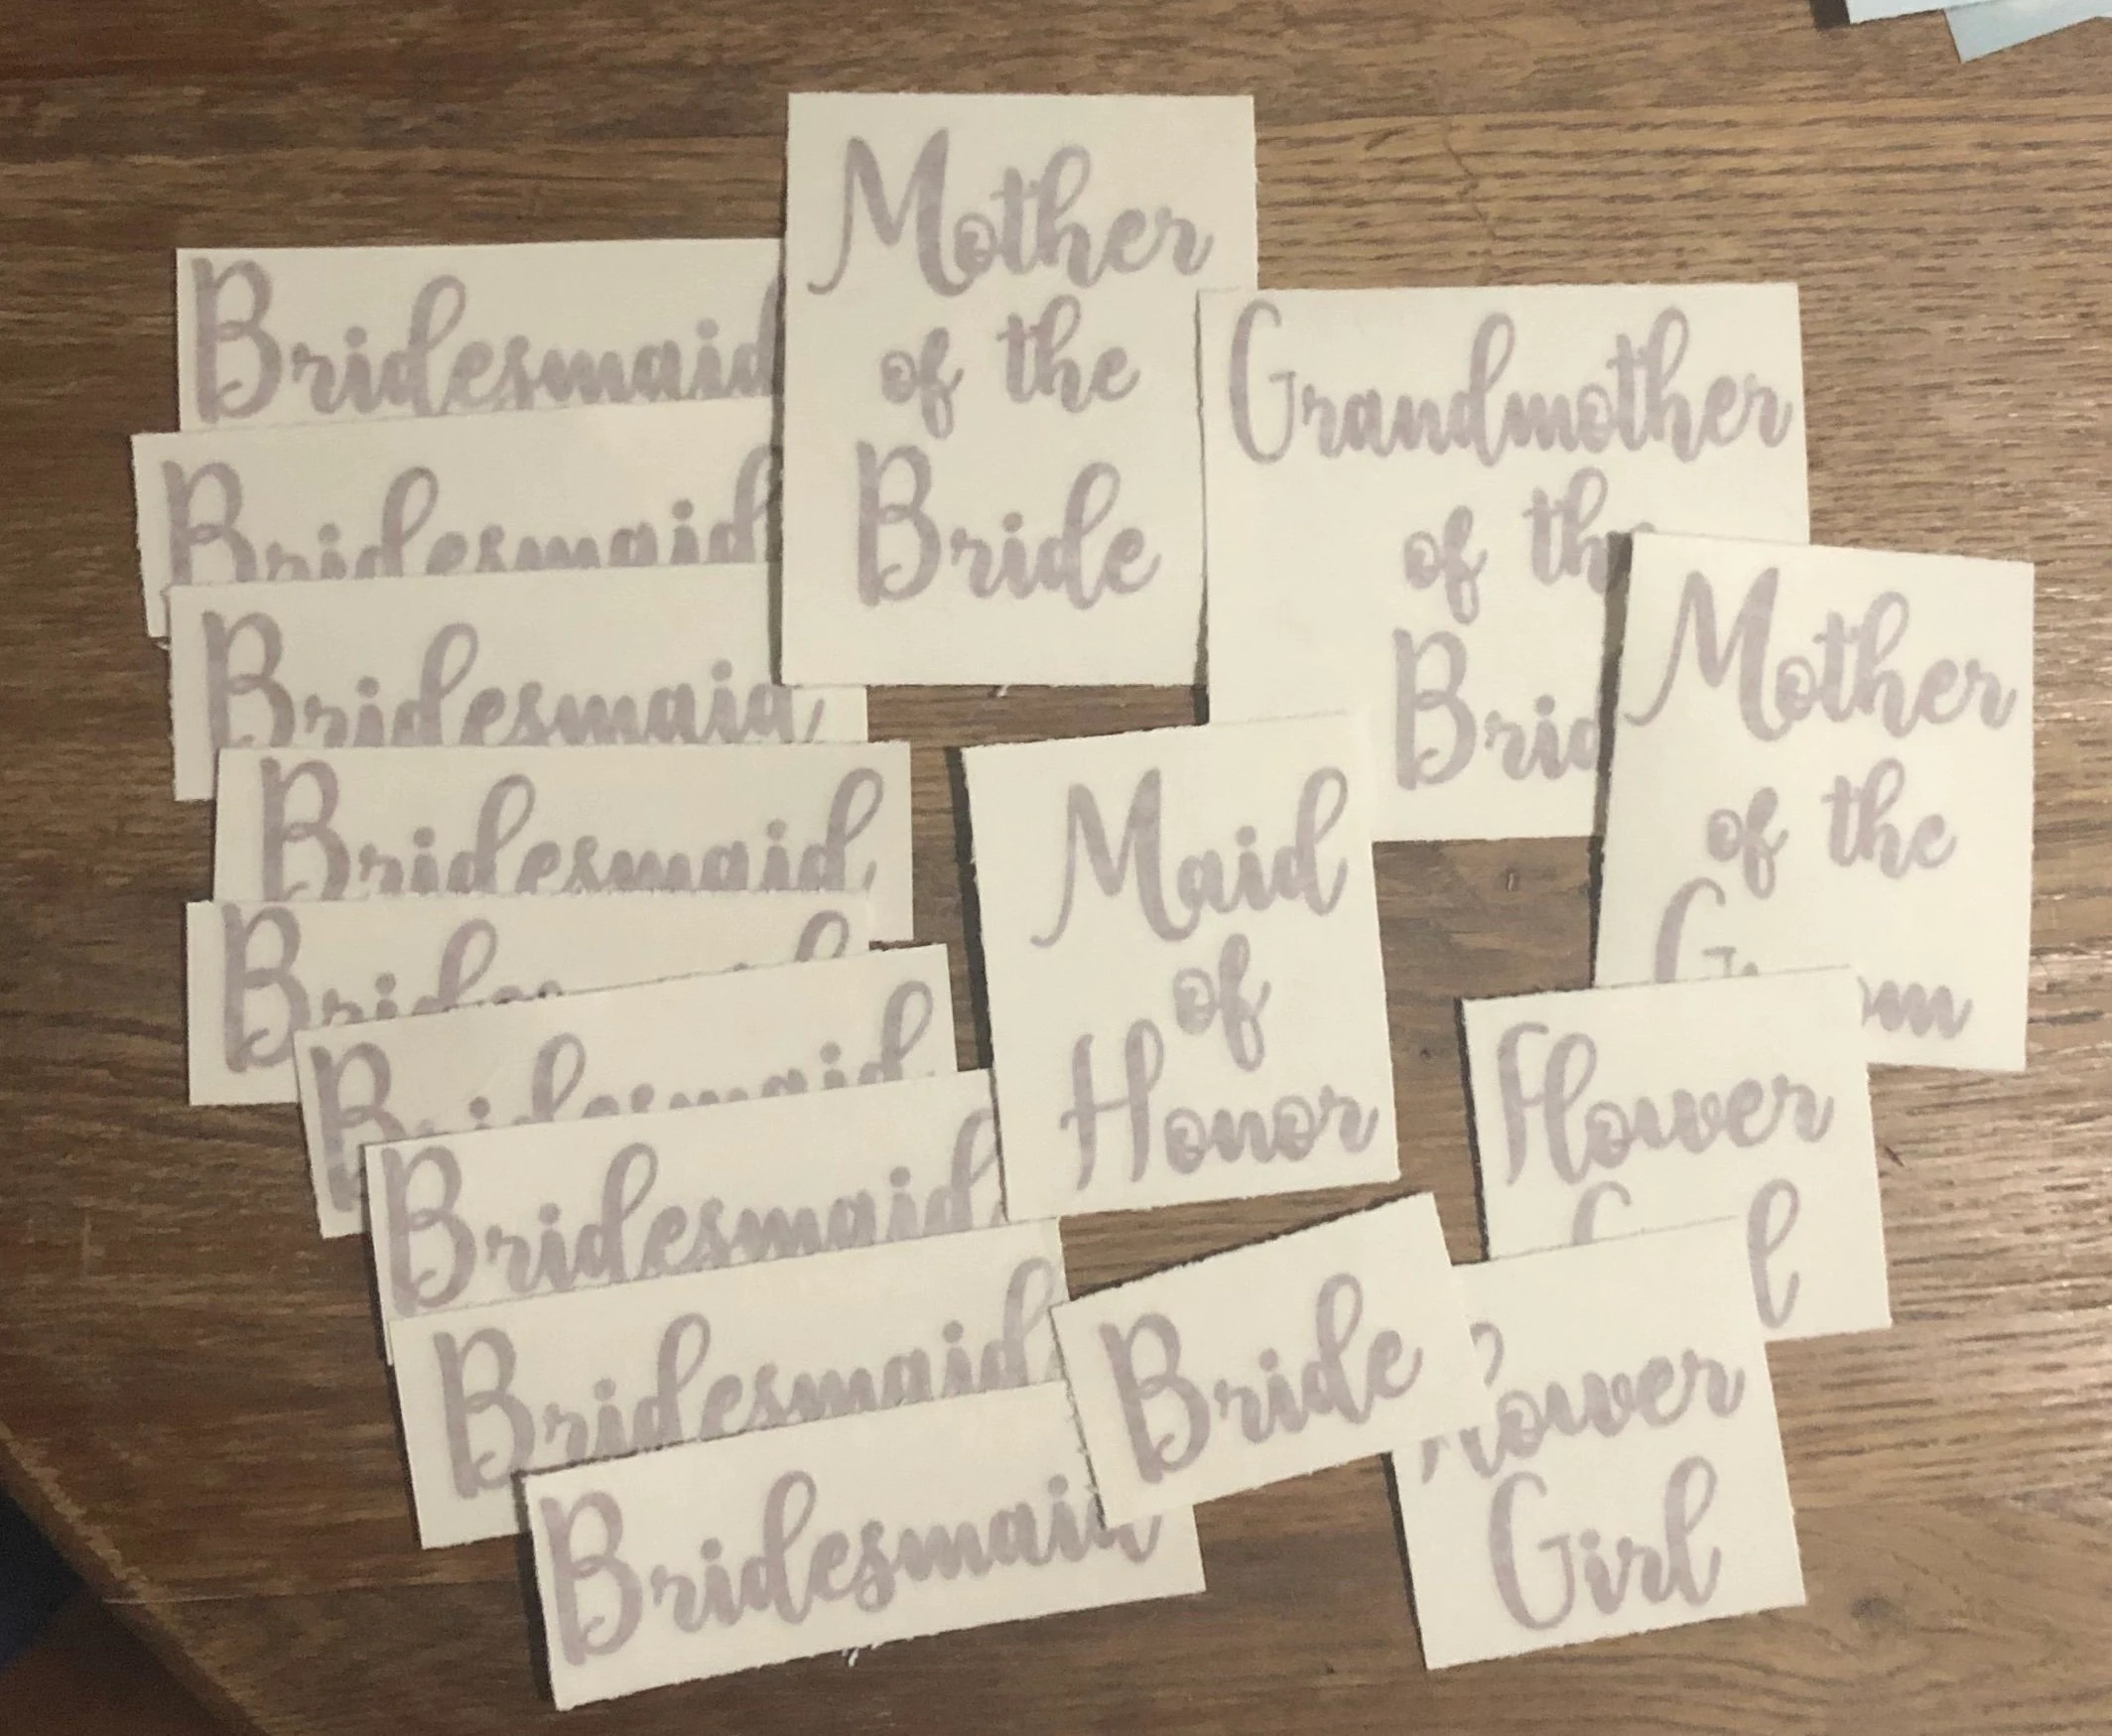 wedding party decals bridesmaid decal maid of honor decal image 3